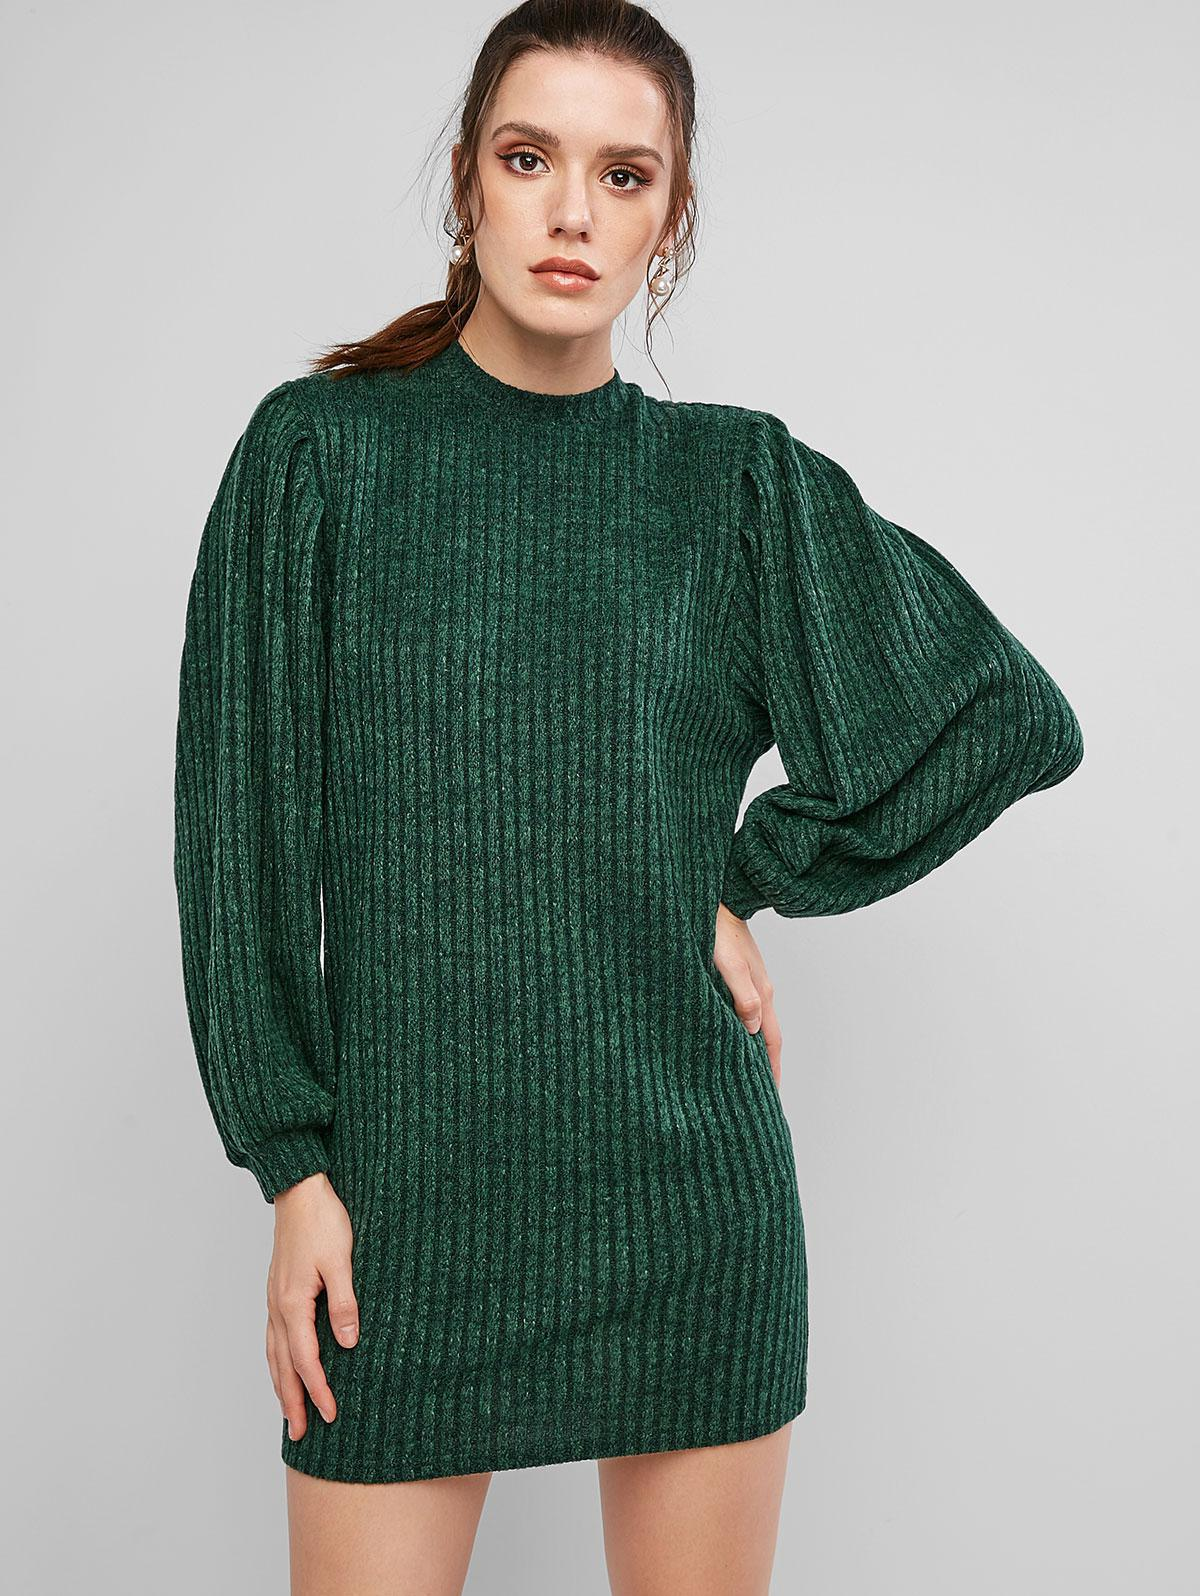 ZAFUL Lantern Sleeve Ribbed Mini Sweater Dress